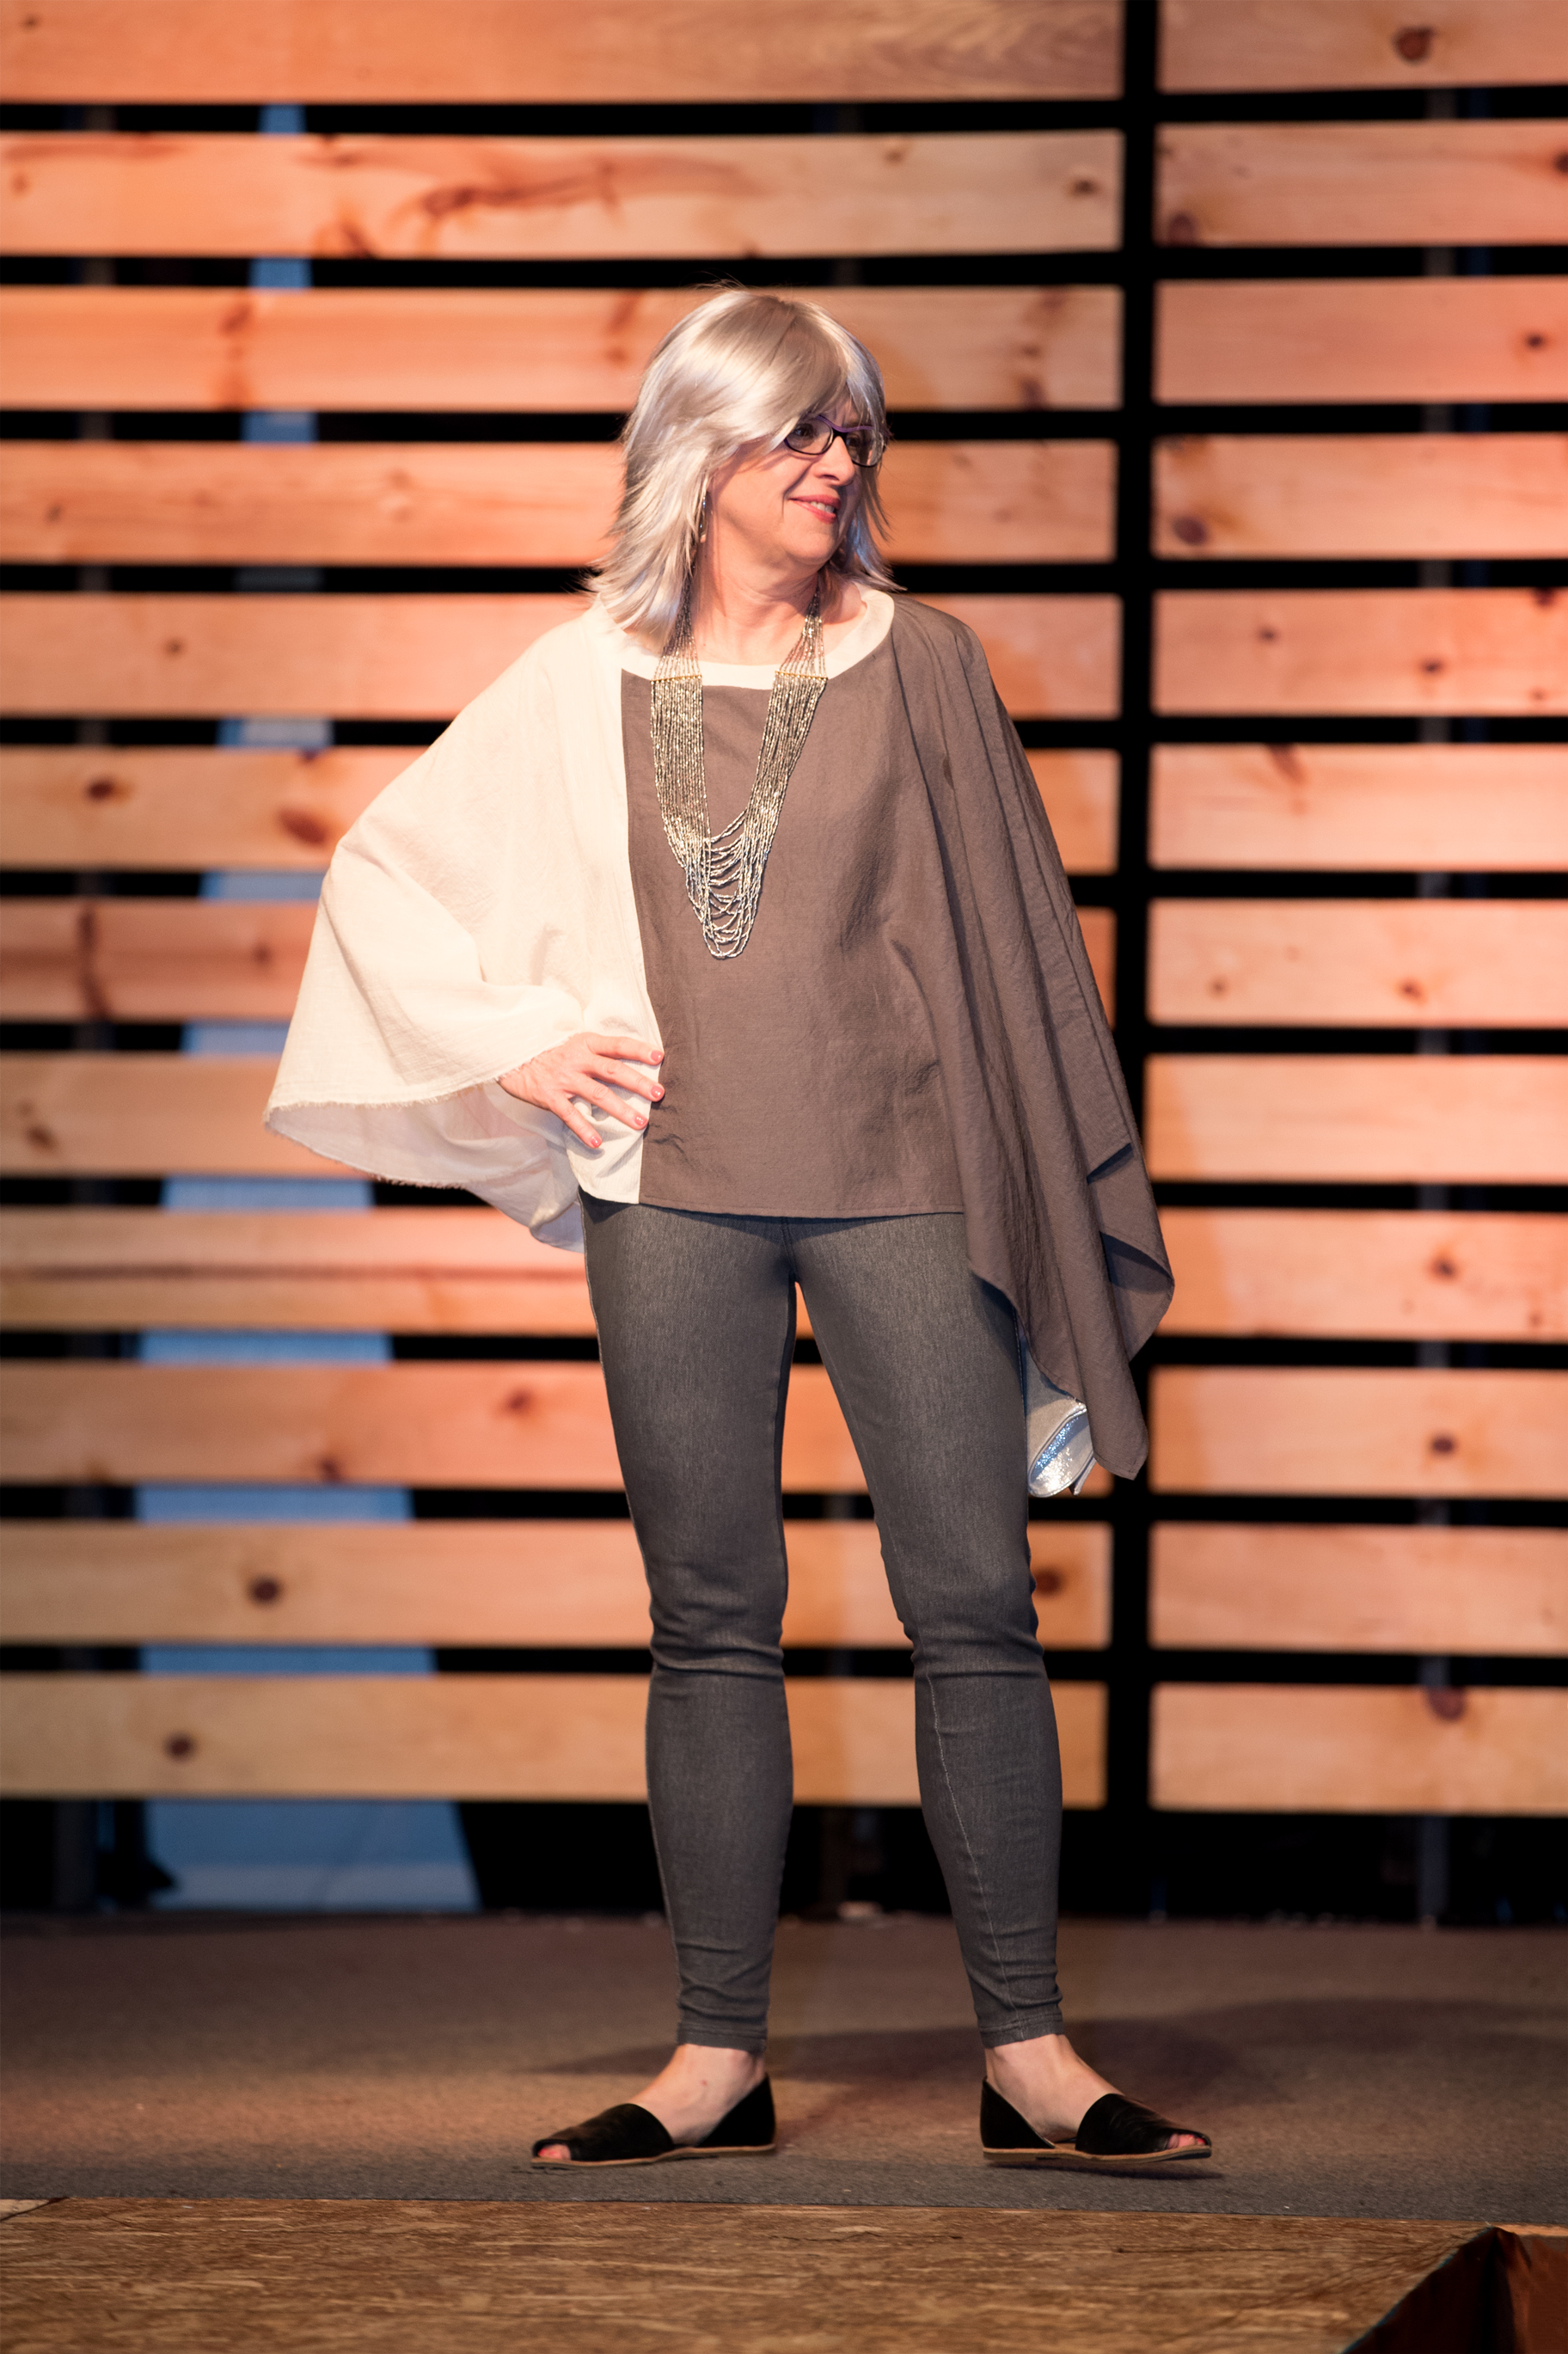 Mission Wear Upcycled Patchwork Fashion Show - 016.jpg